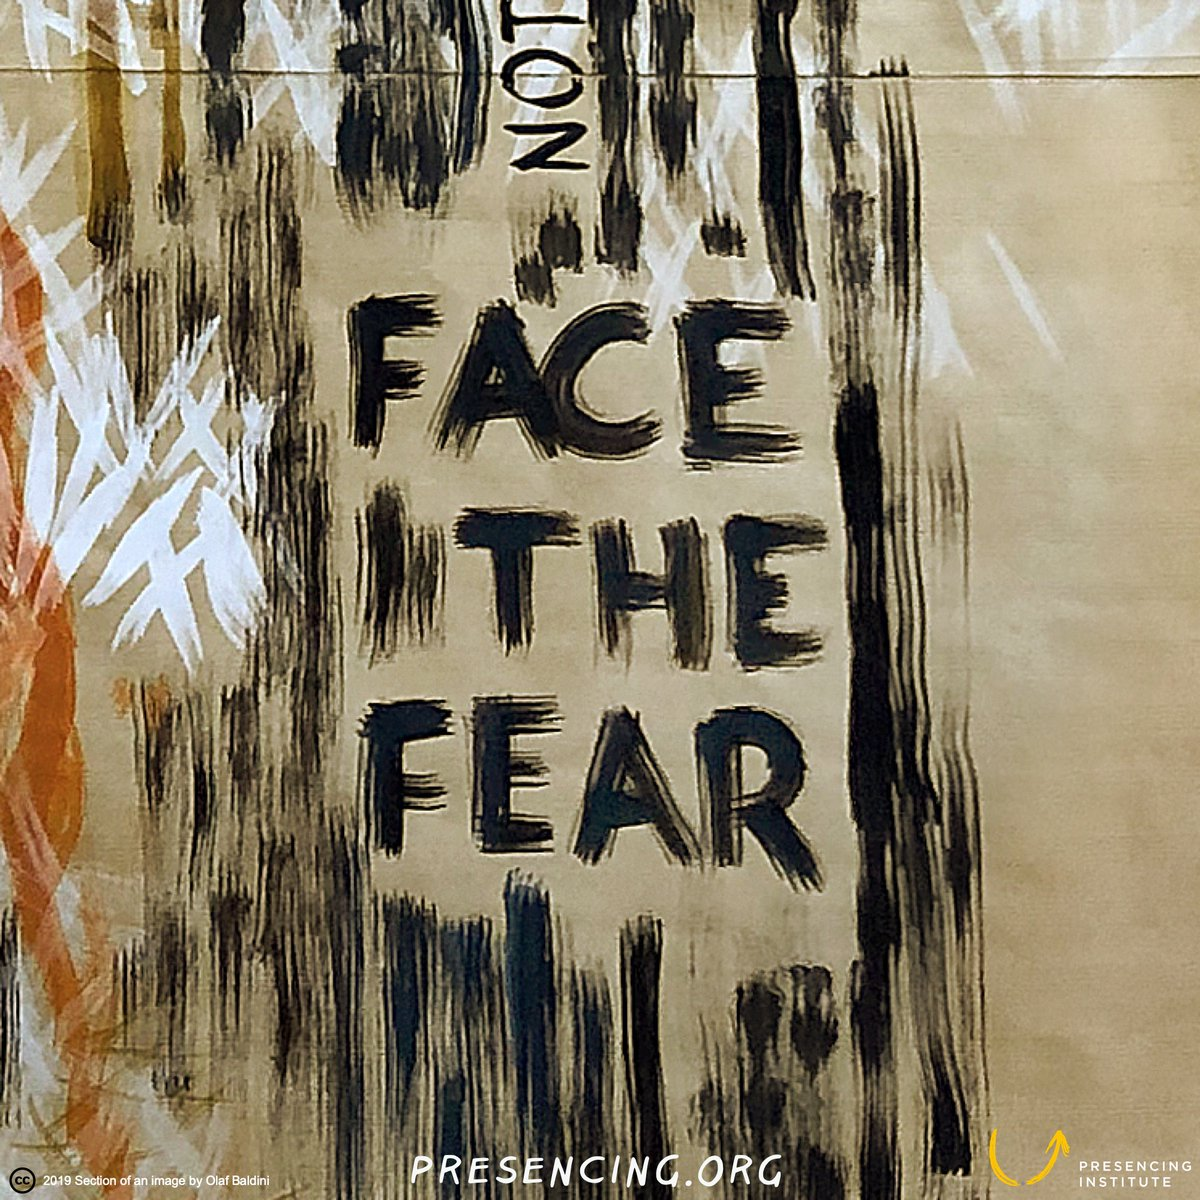 As uncomfortable as it might be, face the fear. bit.ly/35YD6j8 #decembercampaign #payitforward @presencing_inst Drawing: Olaf Baldini